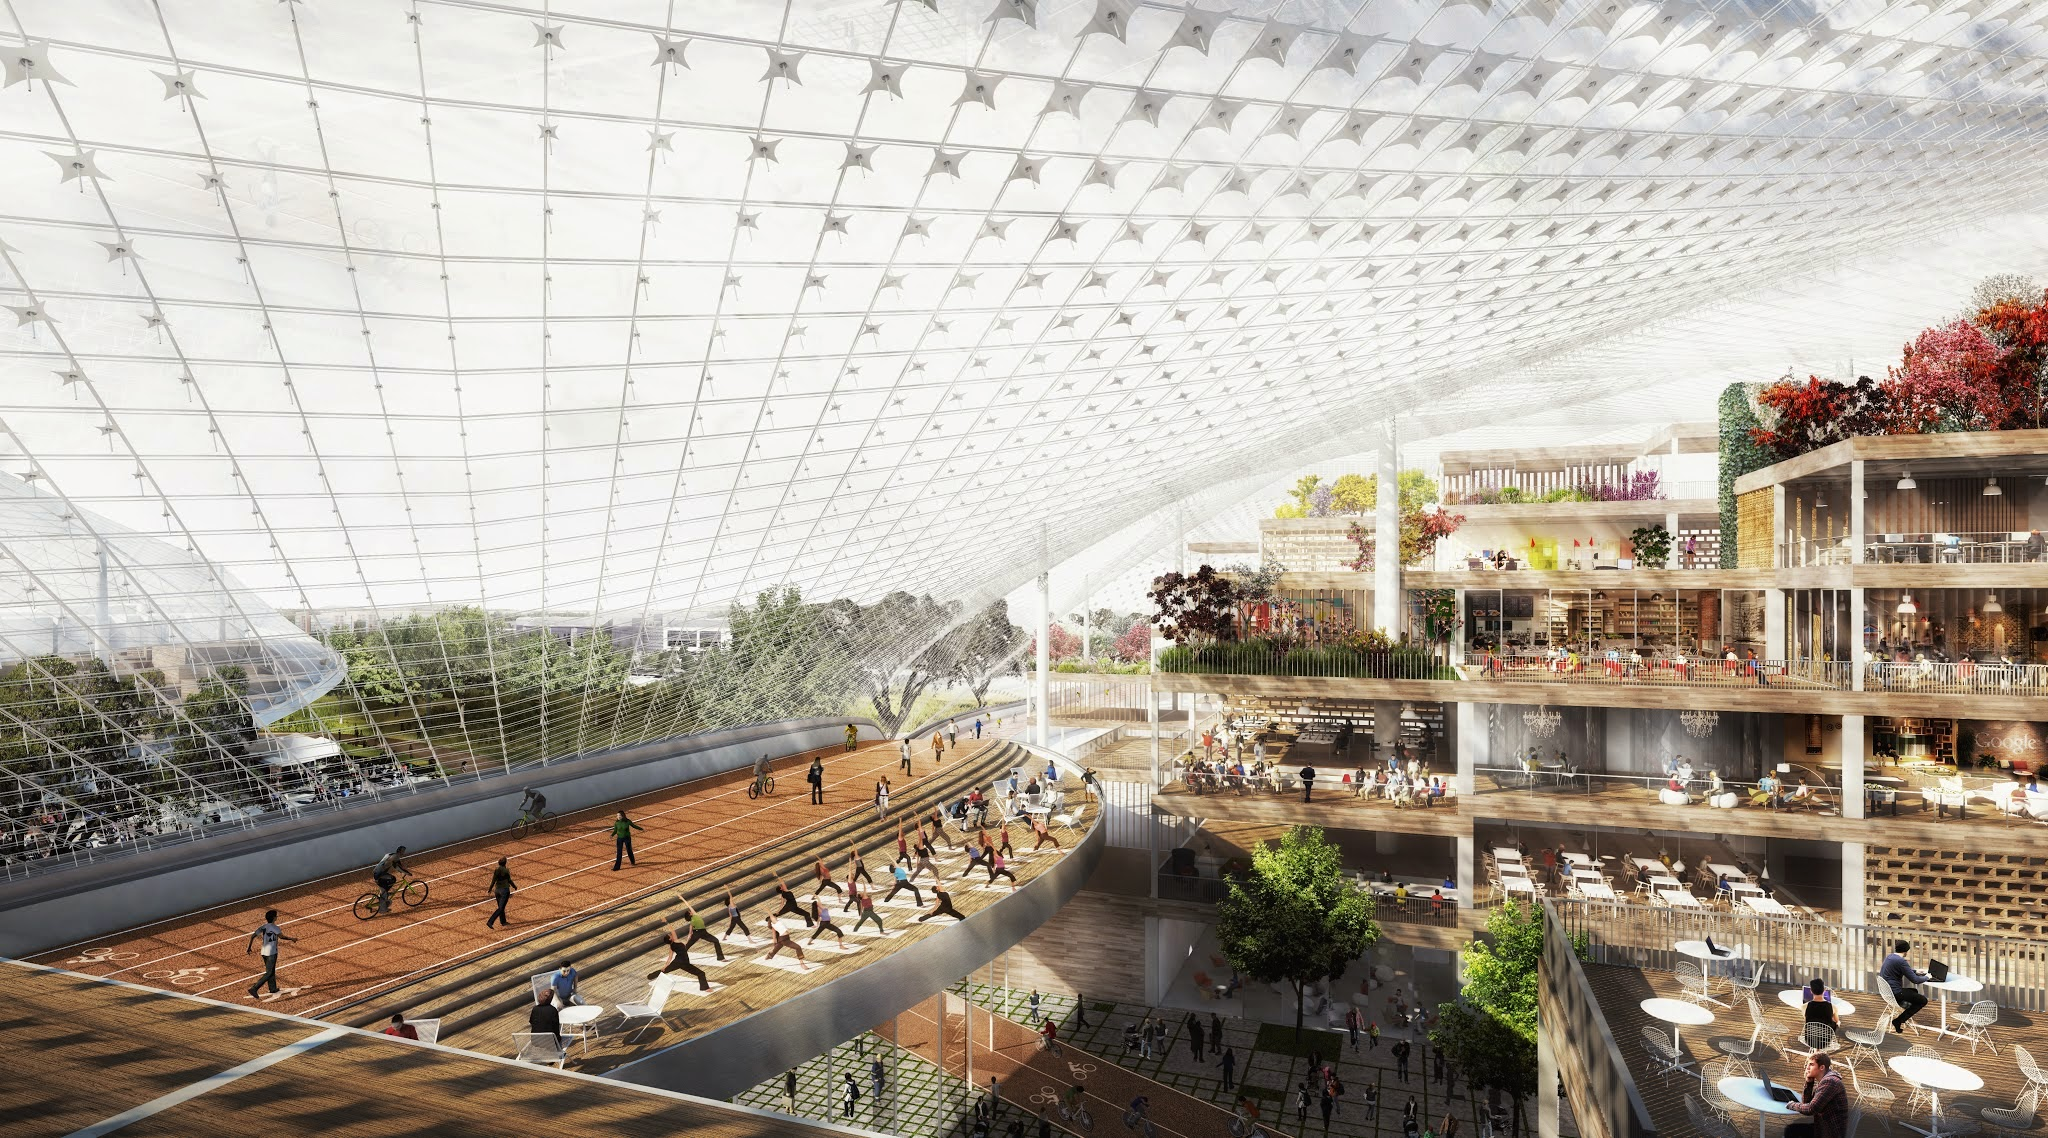 Google North Bayshore Campus proposal rendering 004